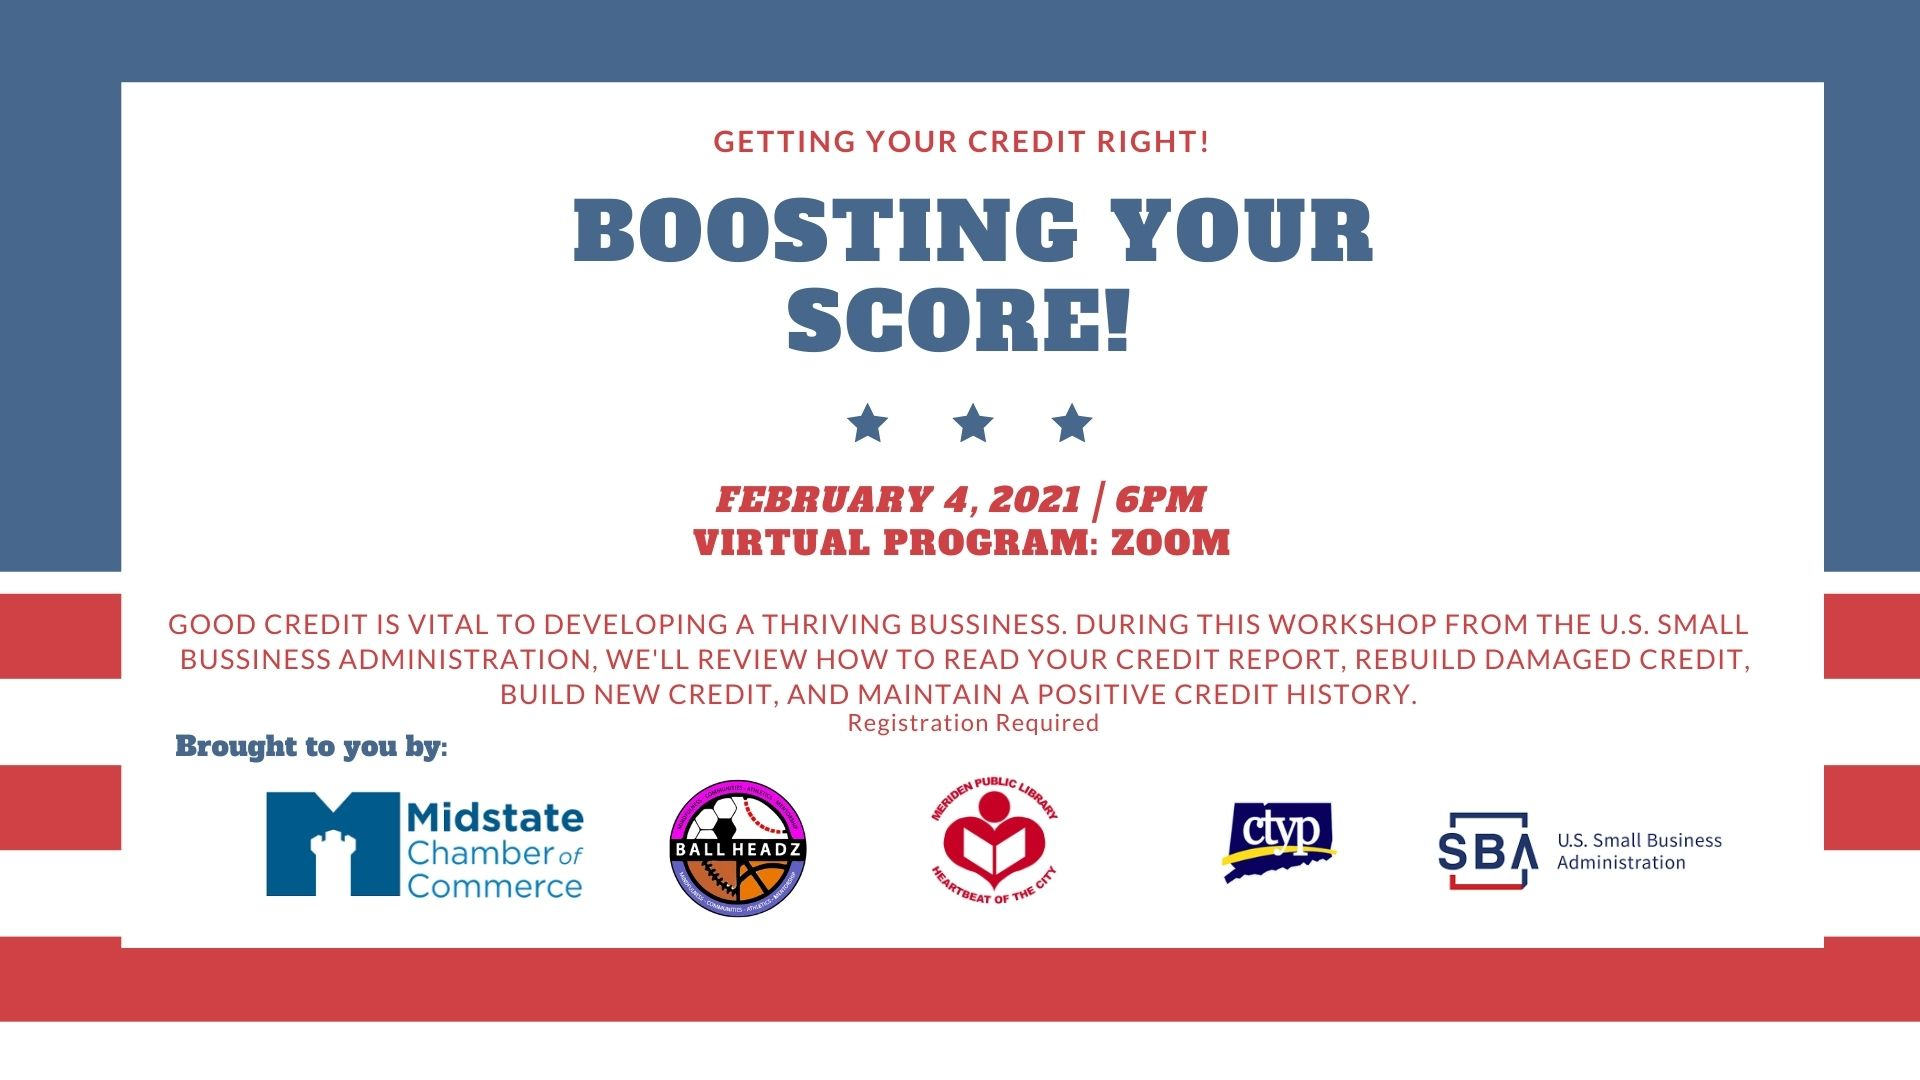 boosting your score! (credit program)